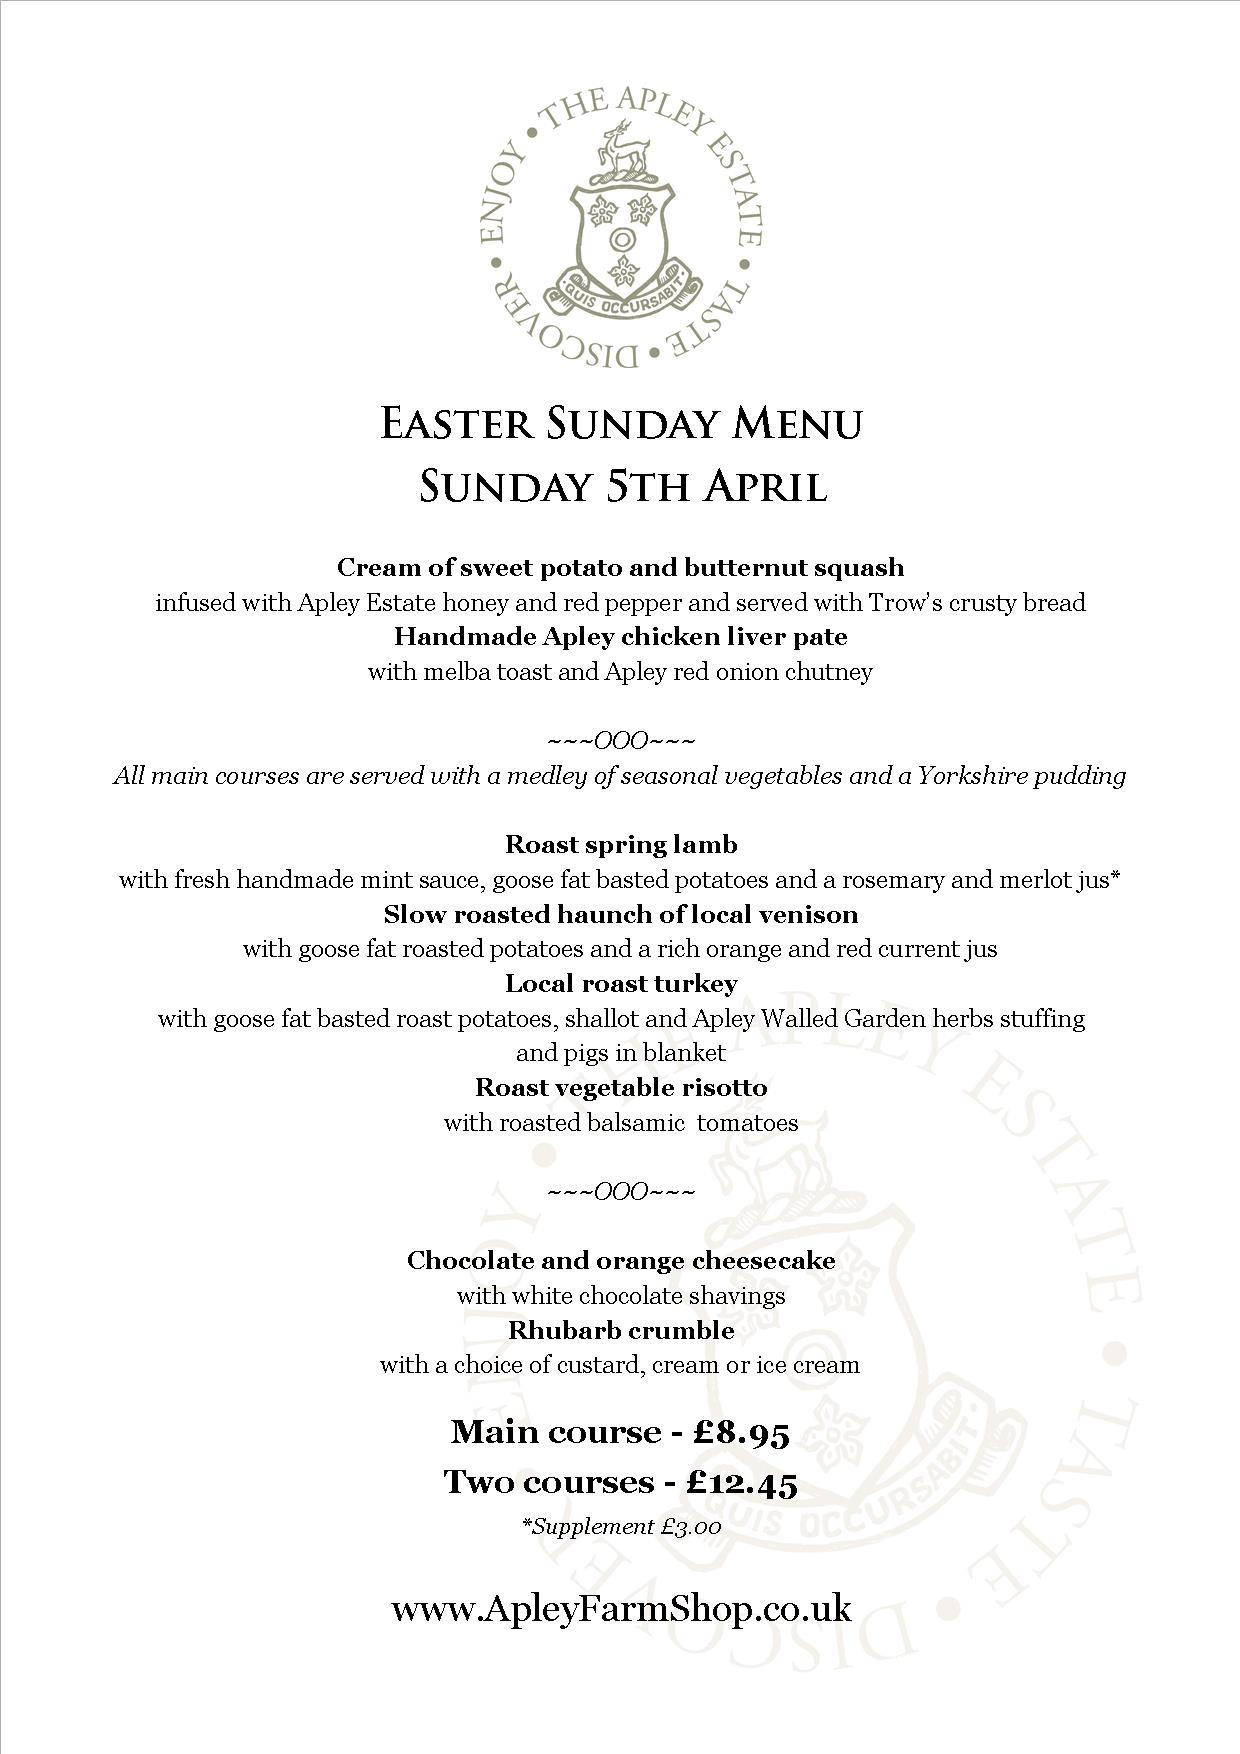 Easter Sunday Dinner Menu  Easter Sunday at Apley Farm Shop